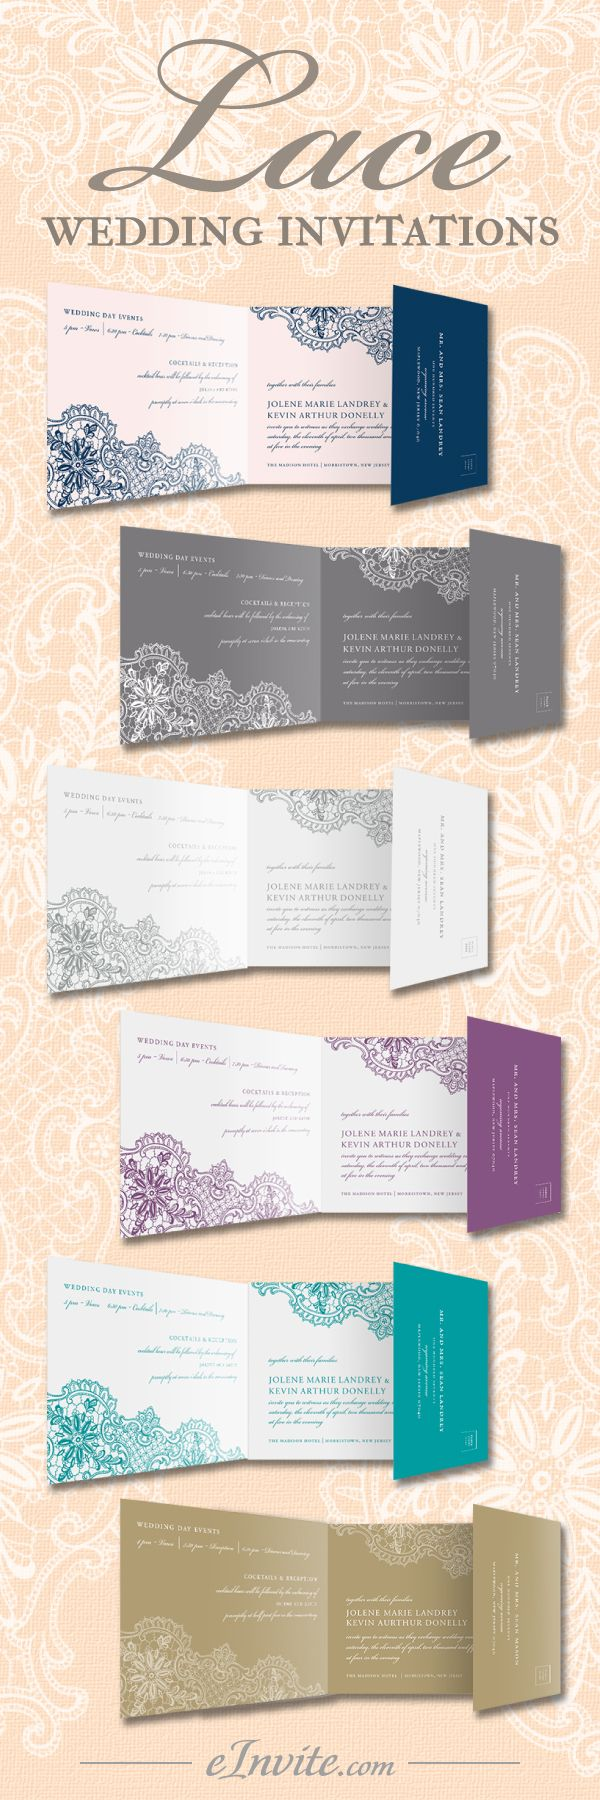 wedding invitations peacock theme%0A Fall in love with eInvite u    s personalized Lace AllInOne Wedding Invitations   u     exquisite